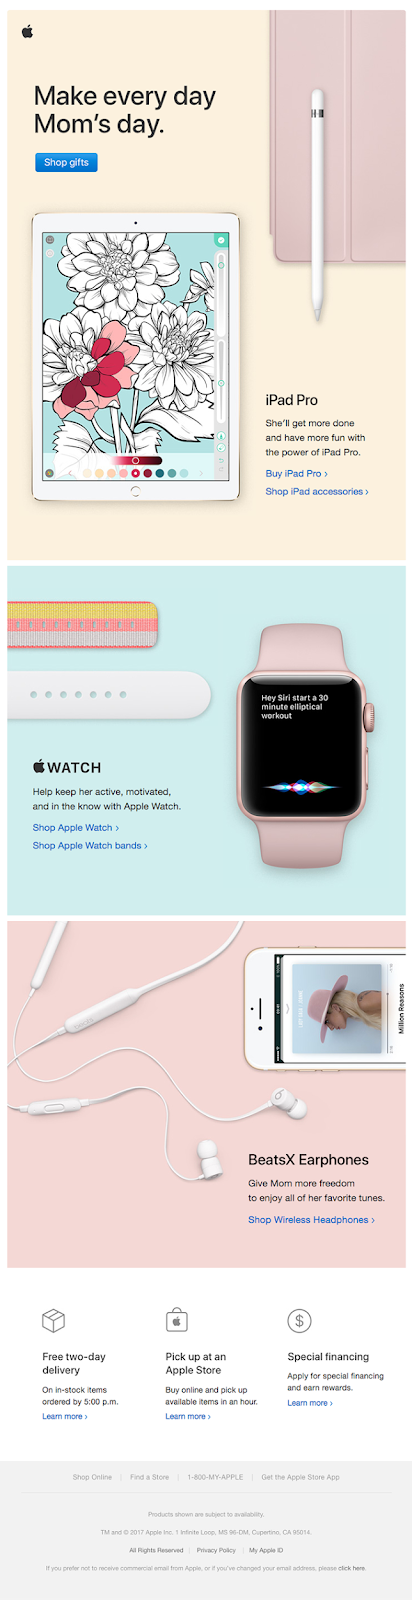 Mothers day email template from apple